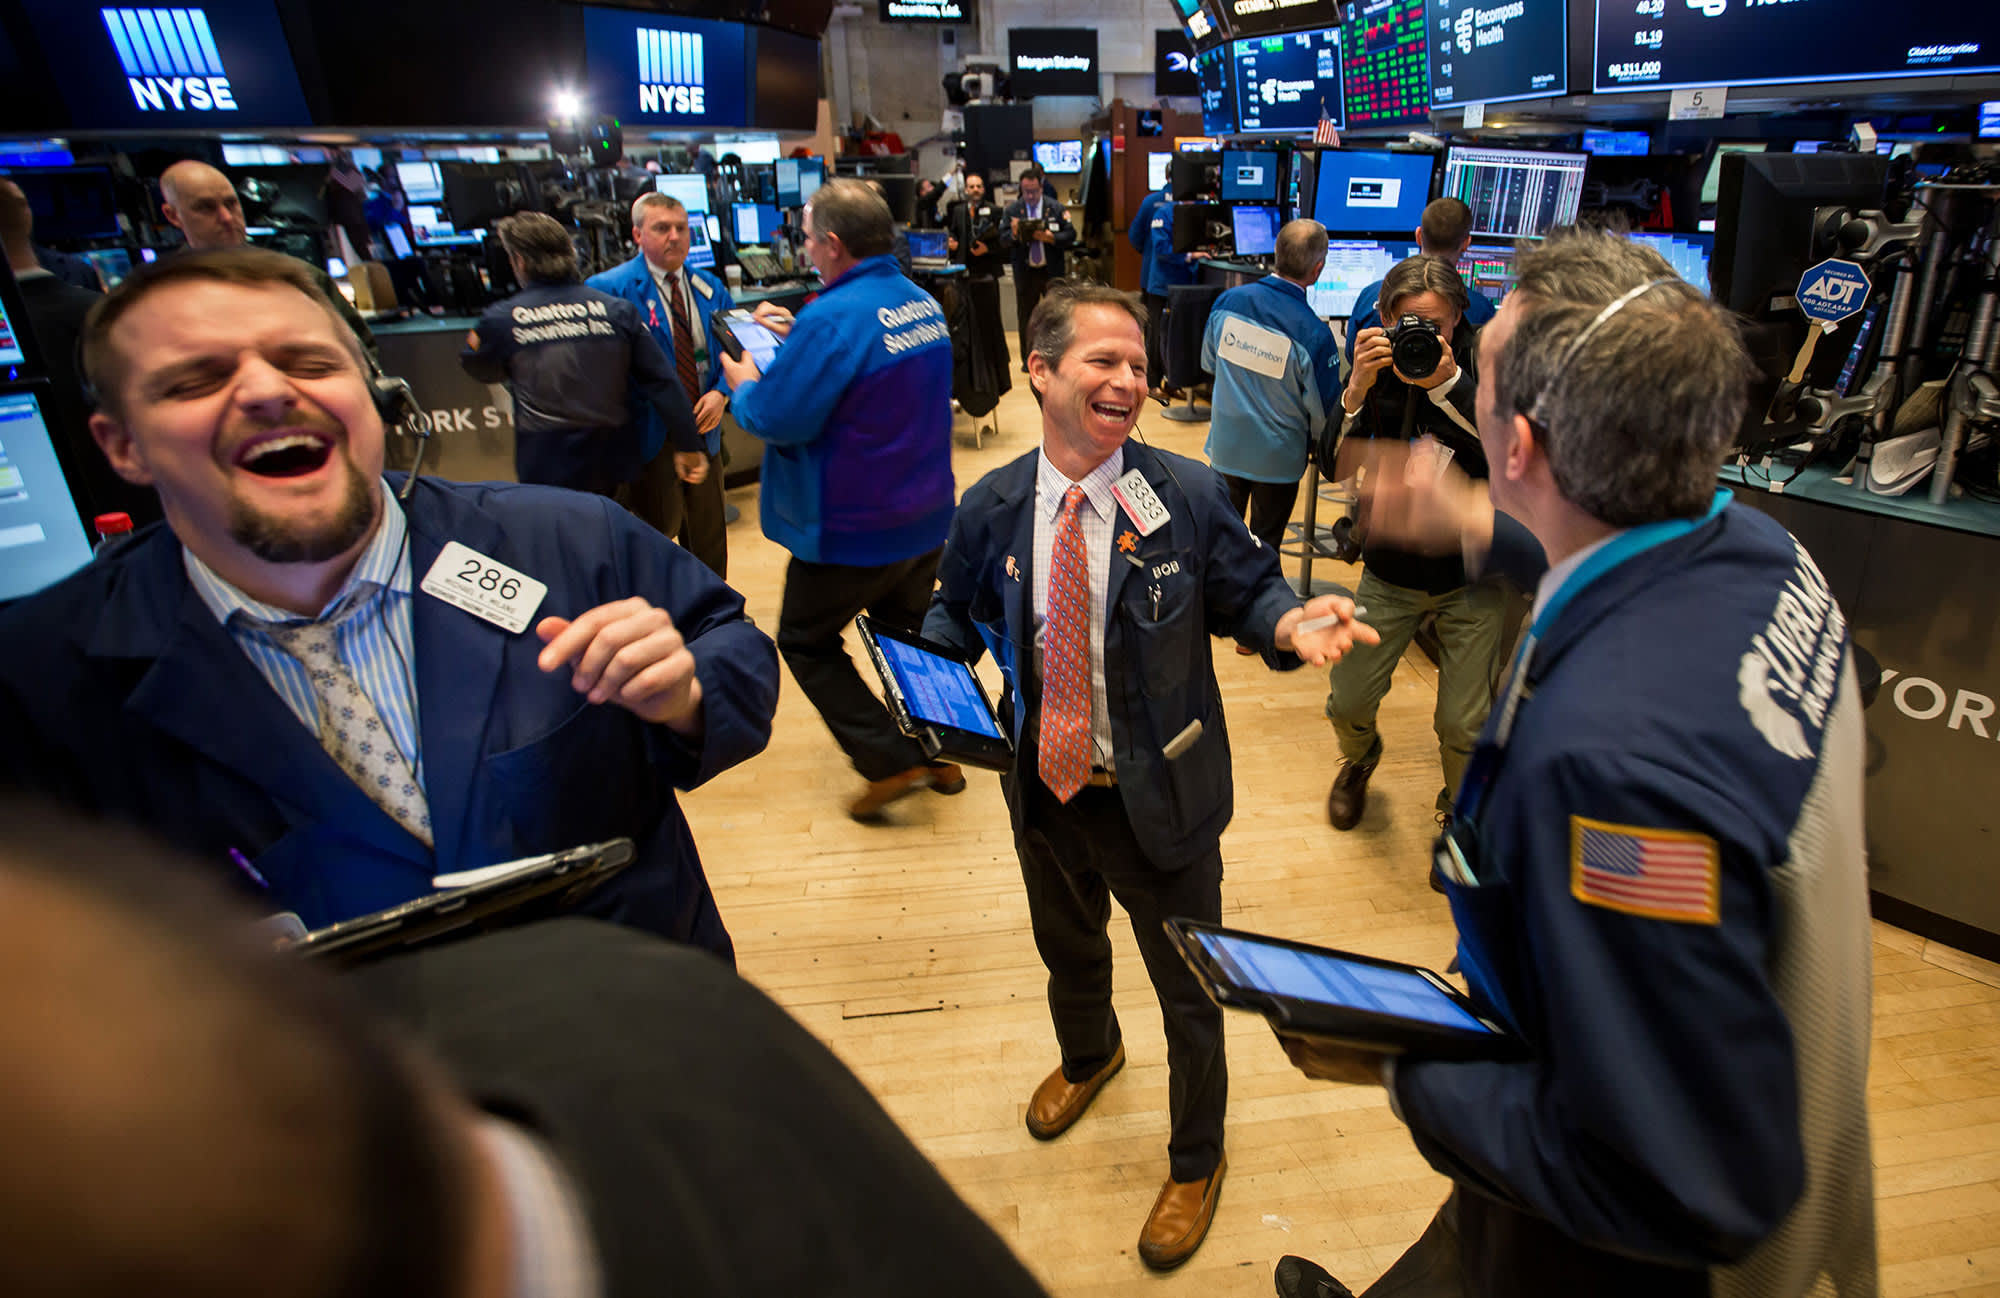 Here's what happened to the stock market on Wednesday